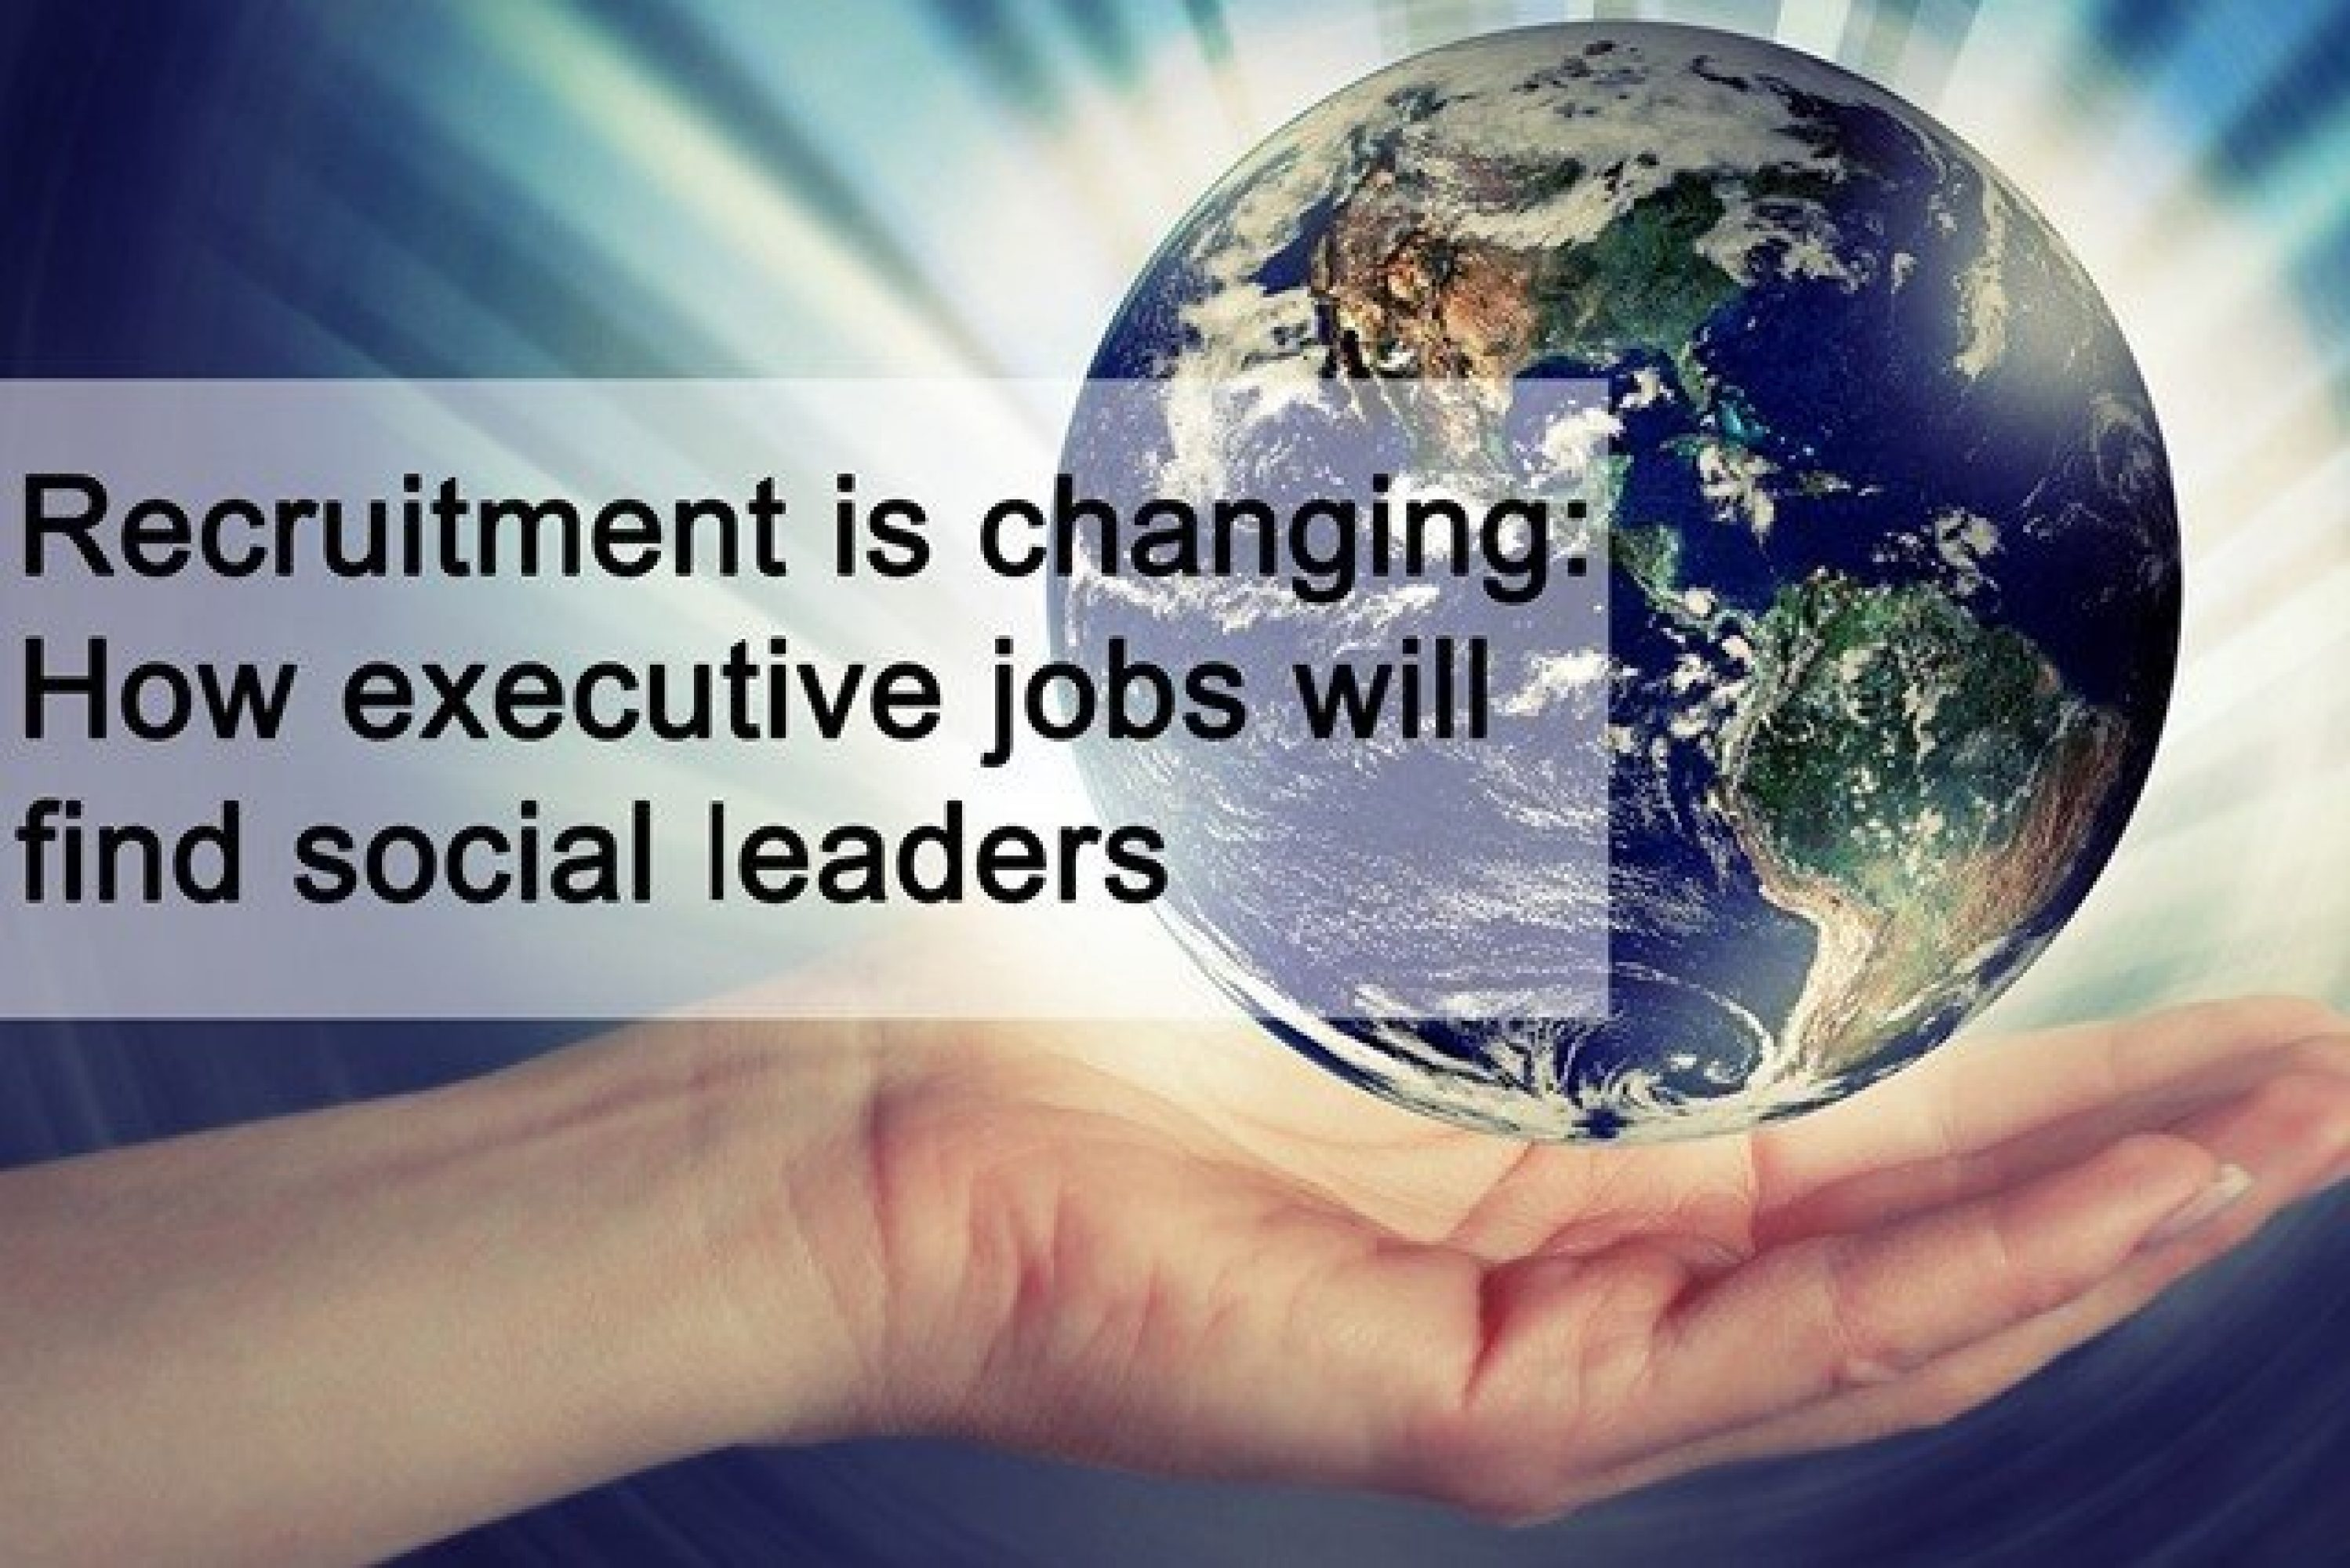 Recruitment is changing: How executive jobs will find social leaders